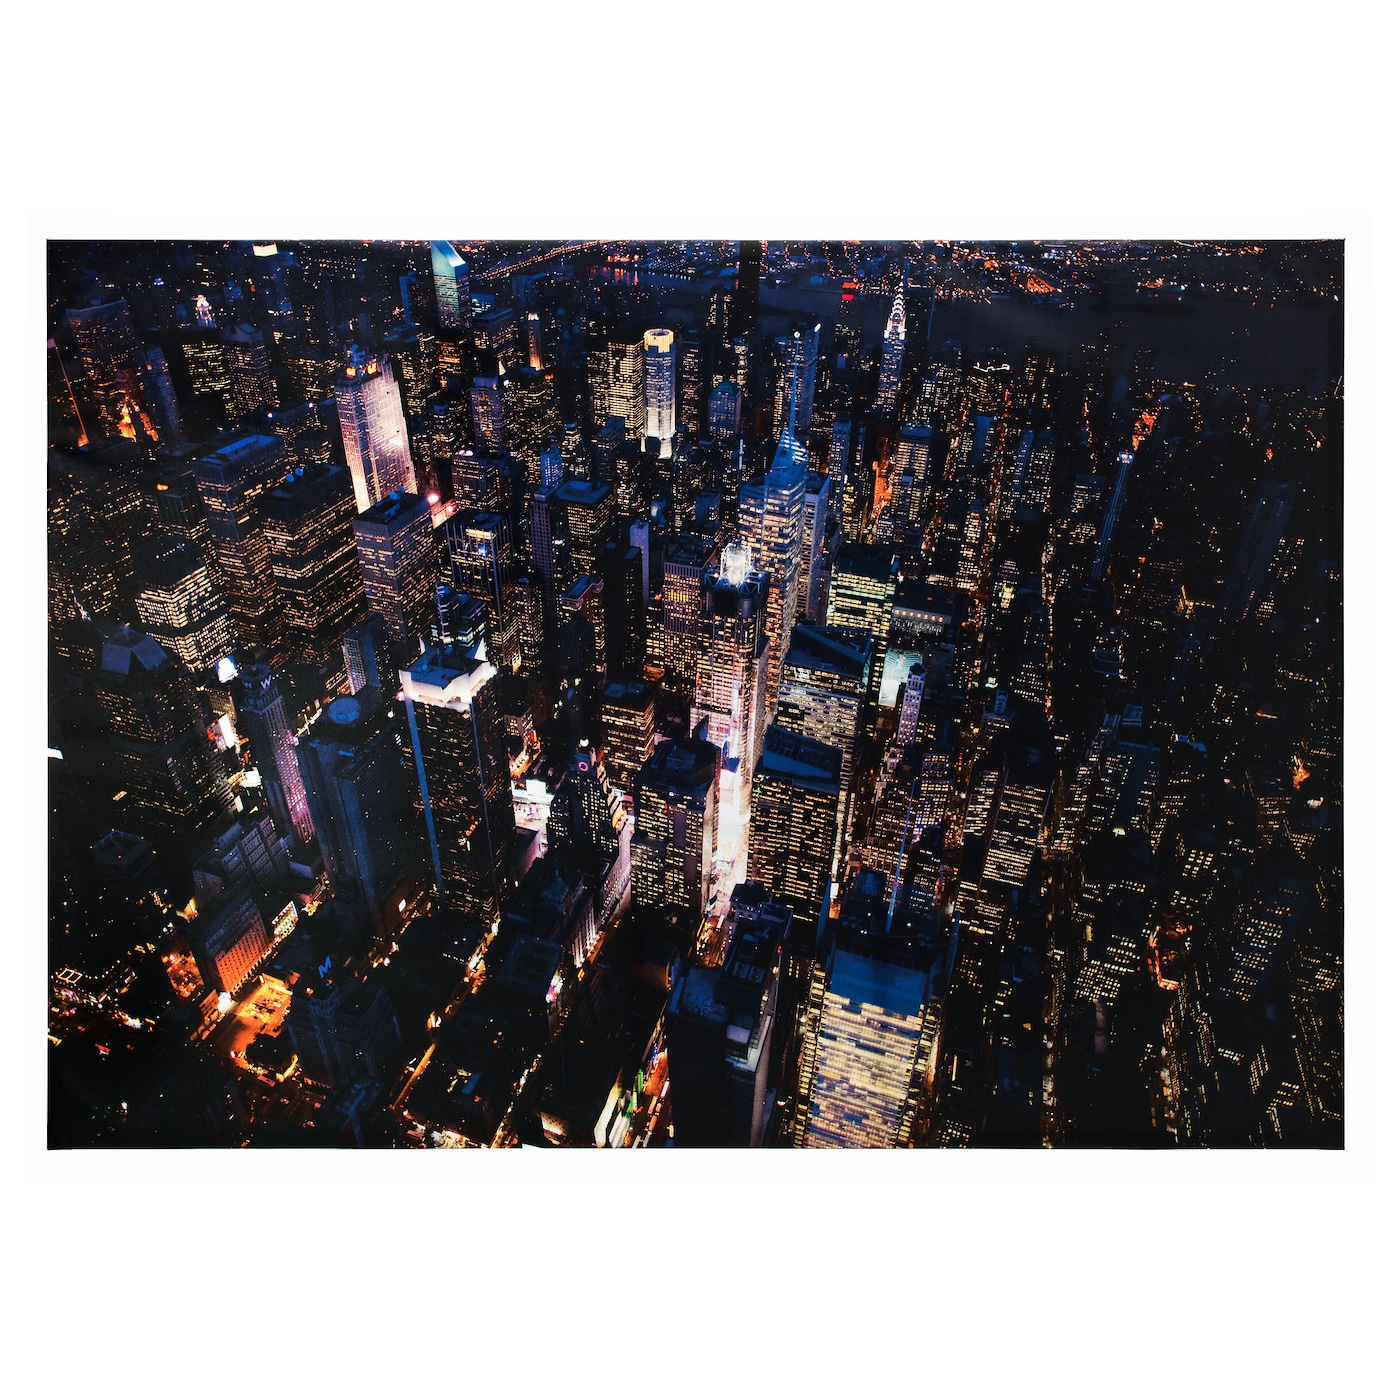 Bj rksta picture city lights new york 200x140 cm ikea for Ikea new york city